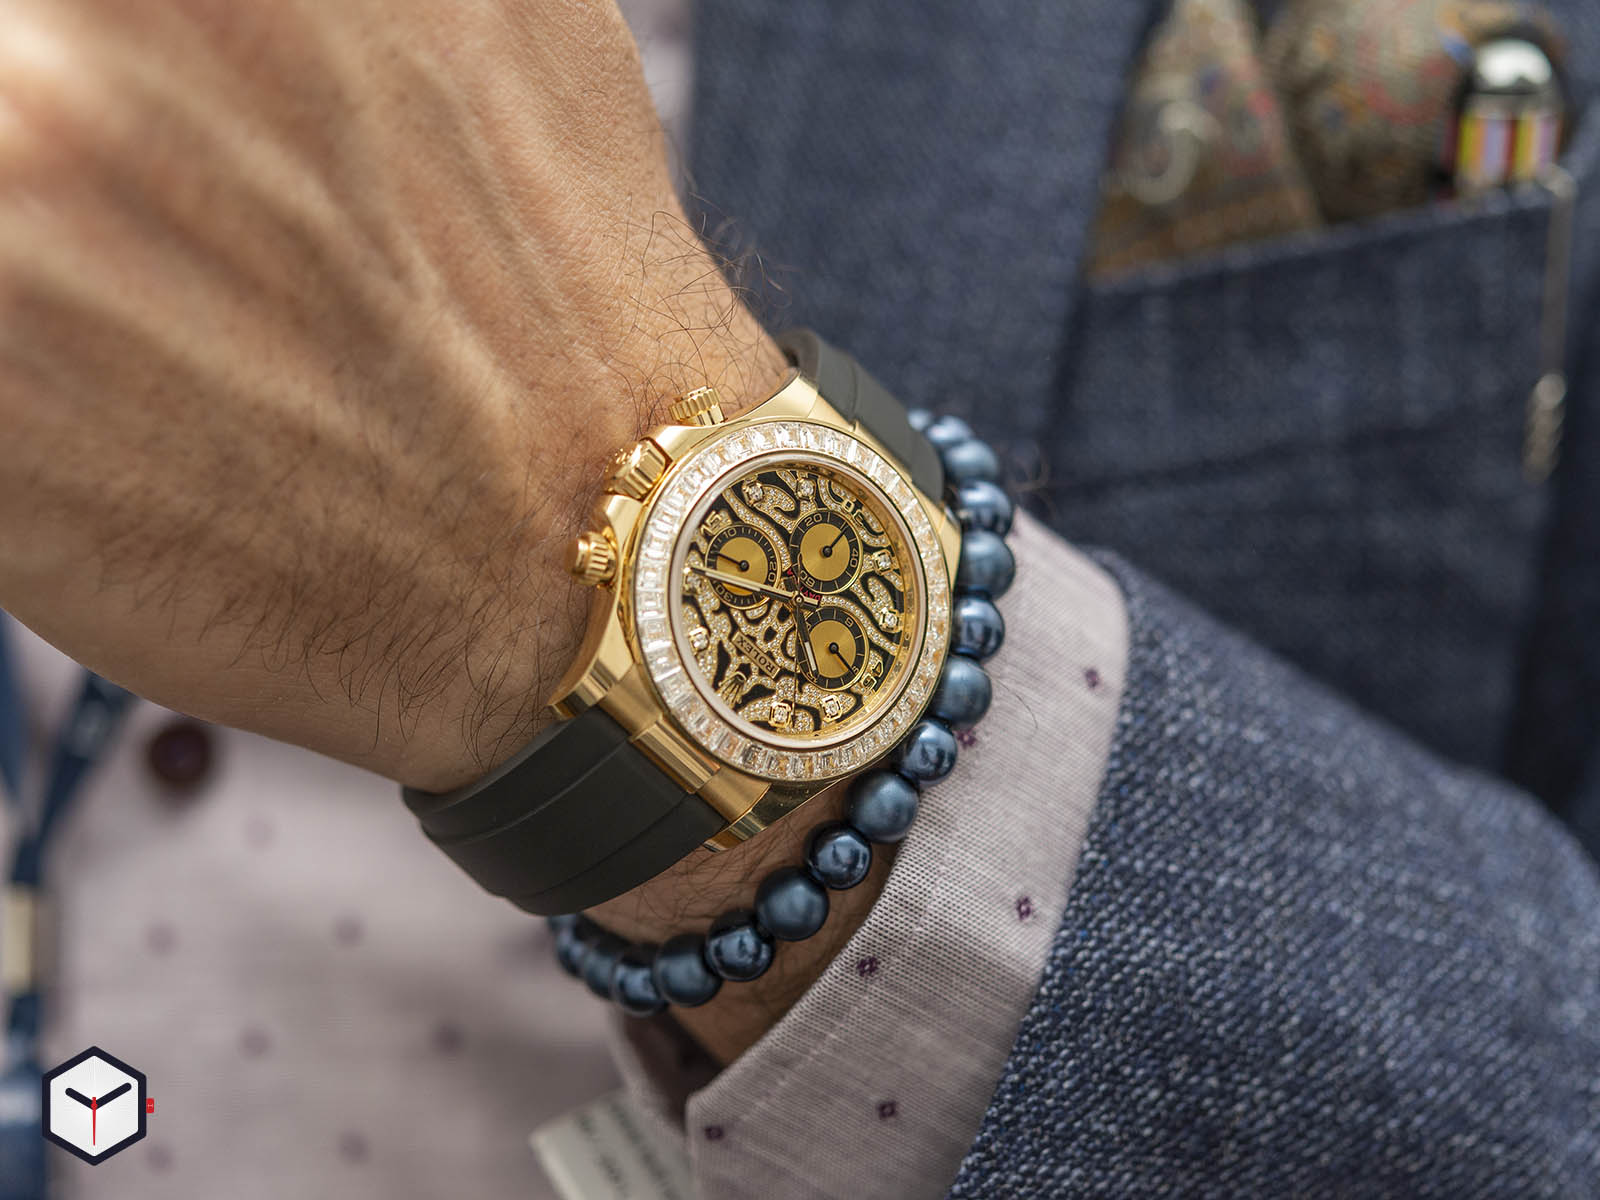 116588-tbr-rolex-daytona-yellow-gold-diamond-baselworld-2019-6.jpg